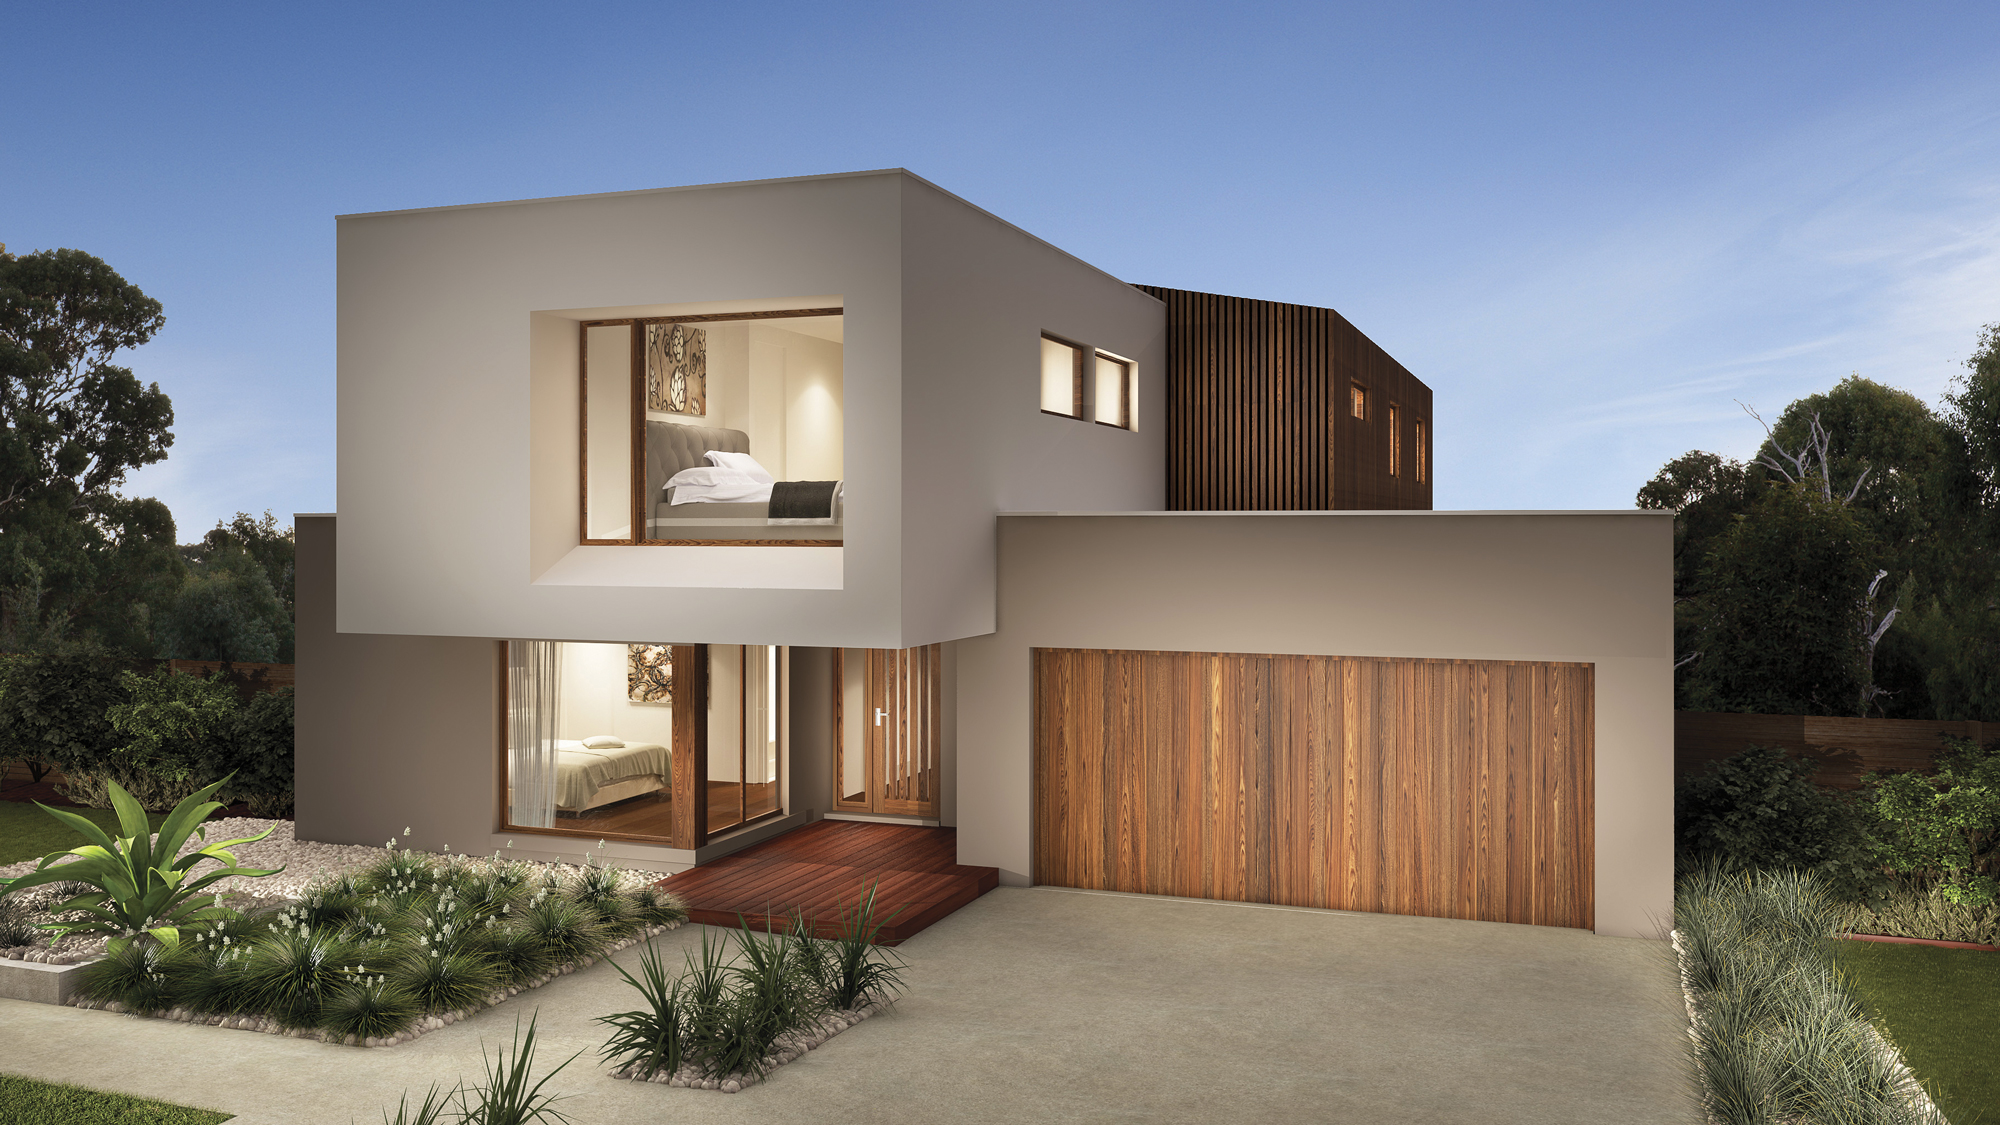 Q1 for Double story home designs melbourne